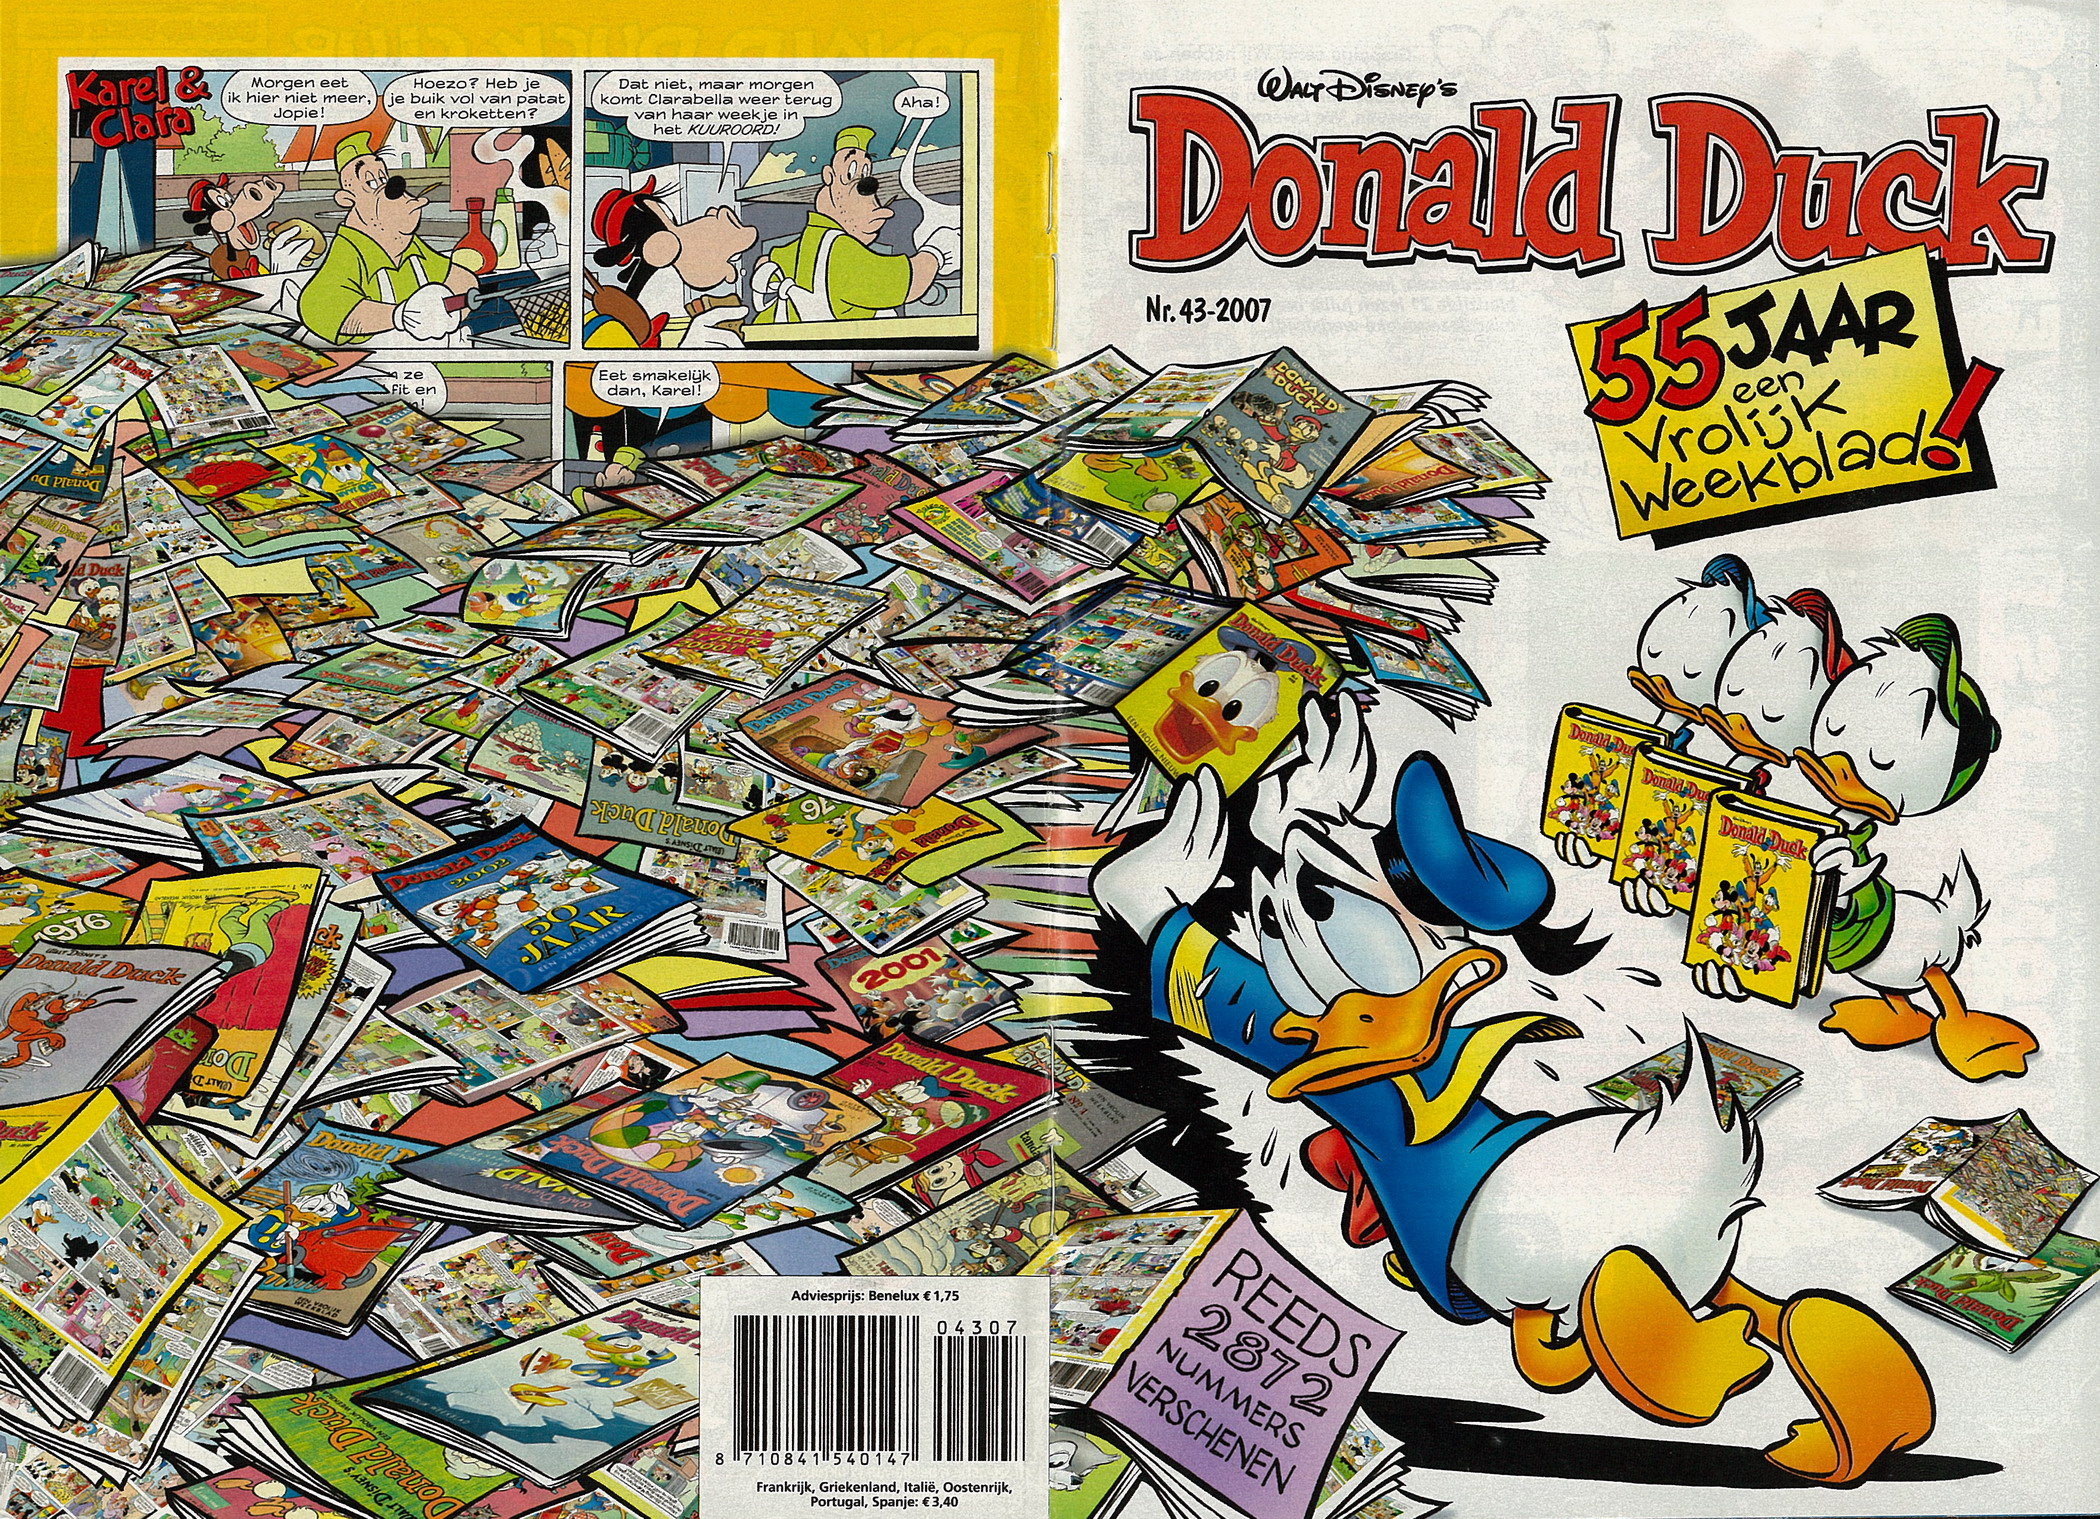 the donald duck magazine Results 1 - 48 of 958 shop from the world's largest selection and best deals for donald duck comic books shop with confidence on ebay.